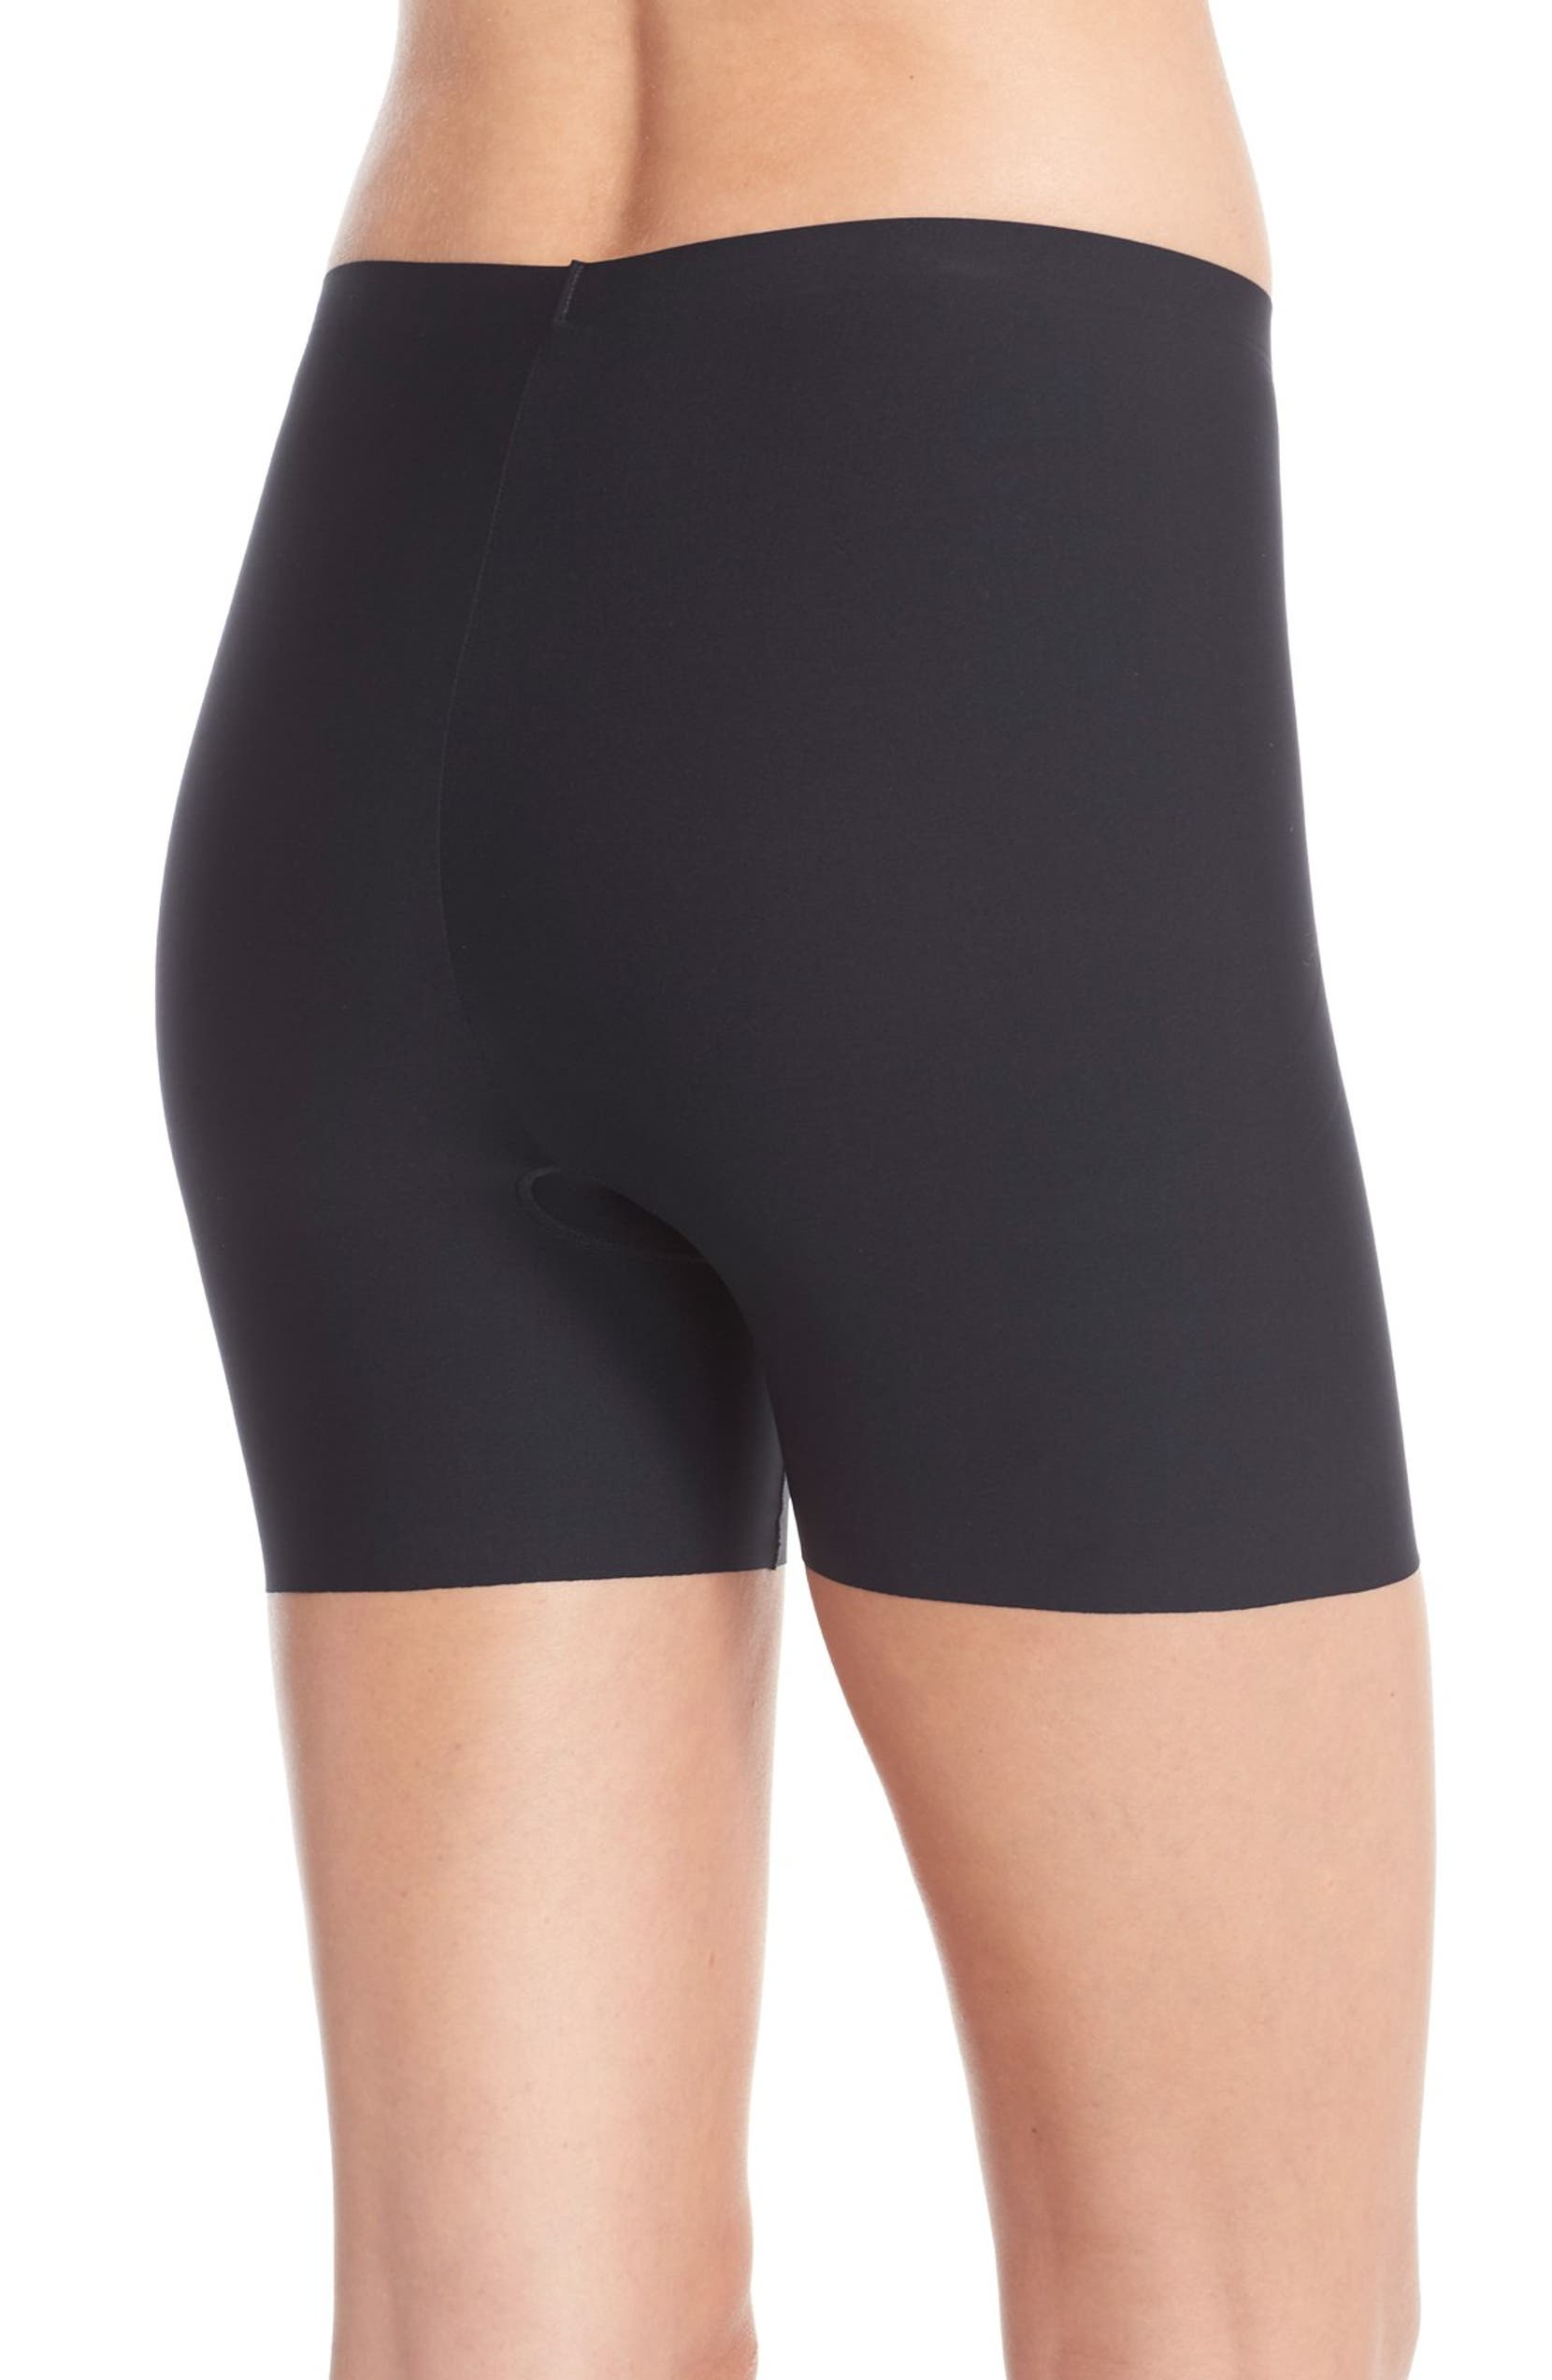 421c1a3912427 SPANX® Thinstincts Girl Shorts